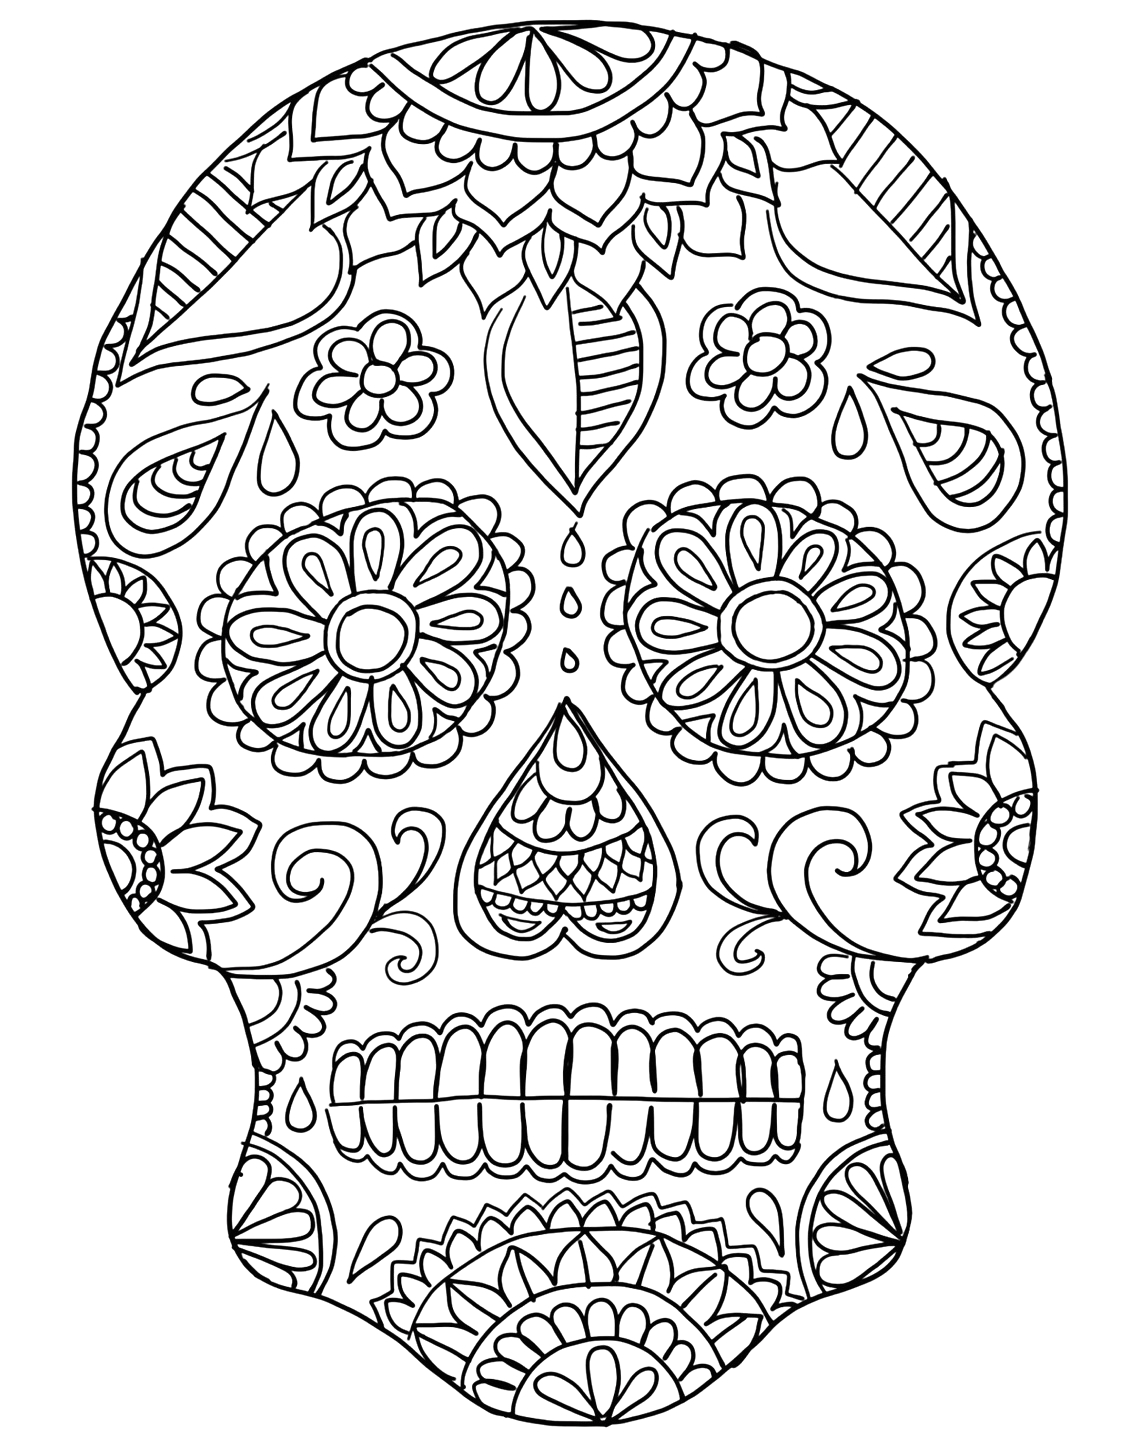 Day Of the Dead Coloring Pages Pdf Day the Dead Coloring Pages Pdf at Getcolorings